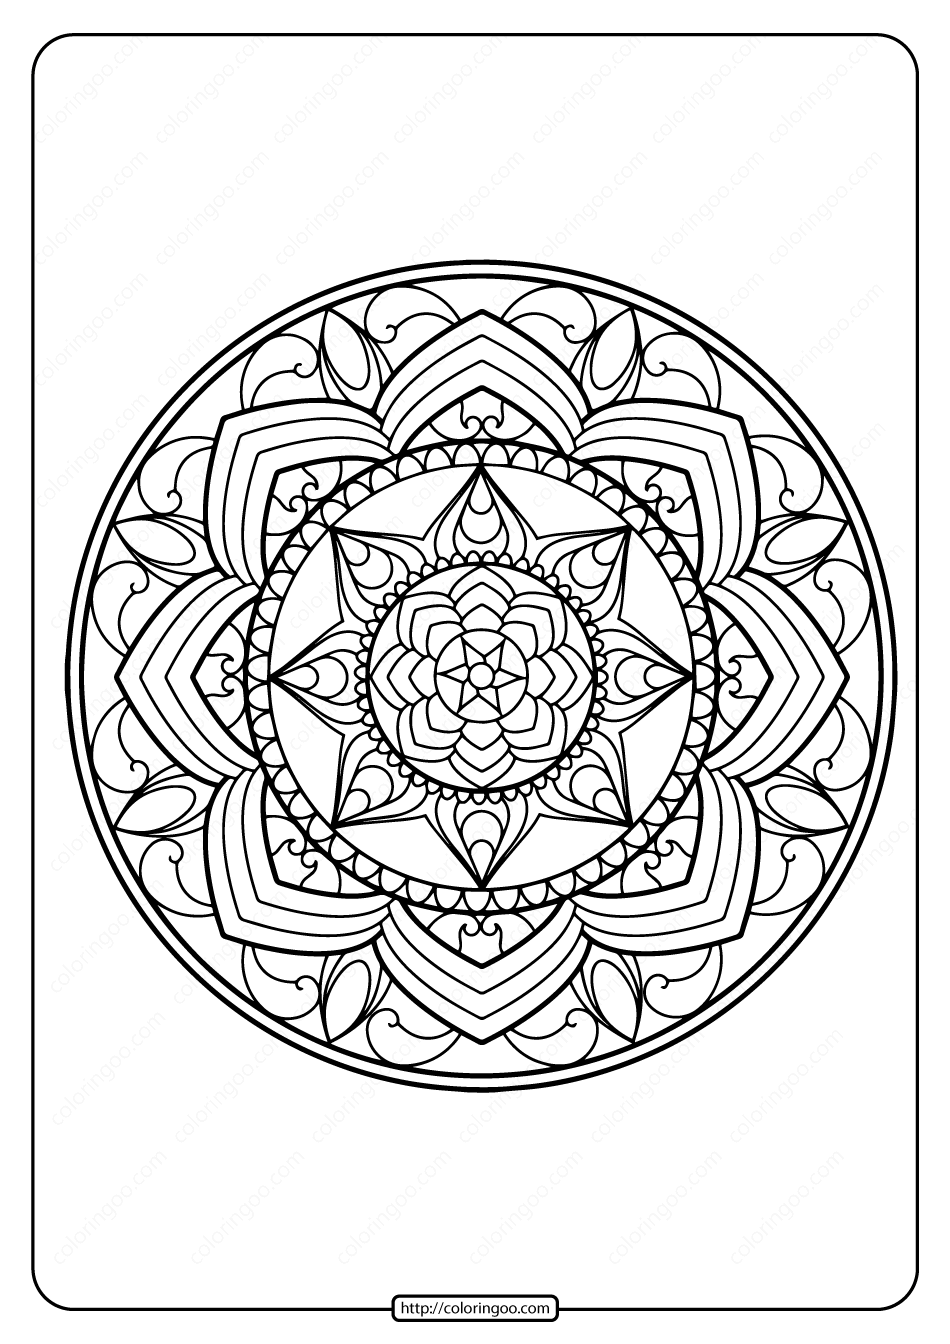 Printable PDF Coloring Book Pages for Adults 019